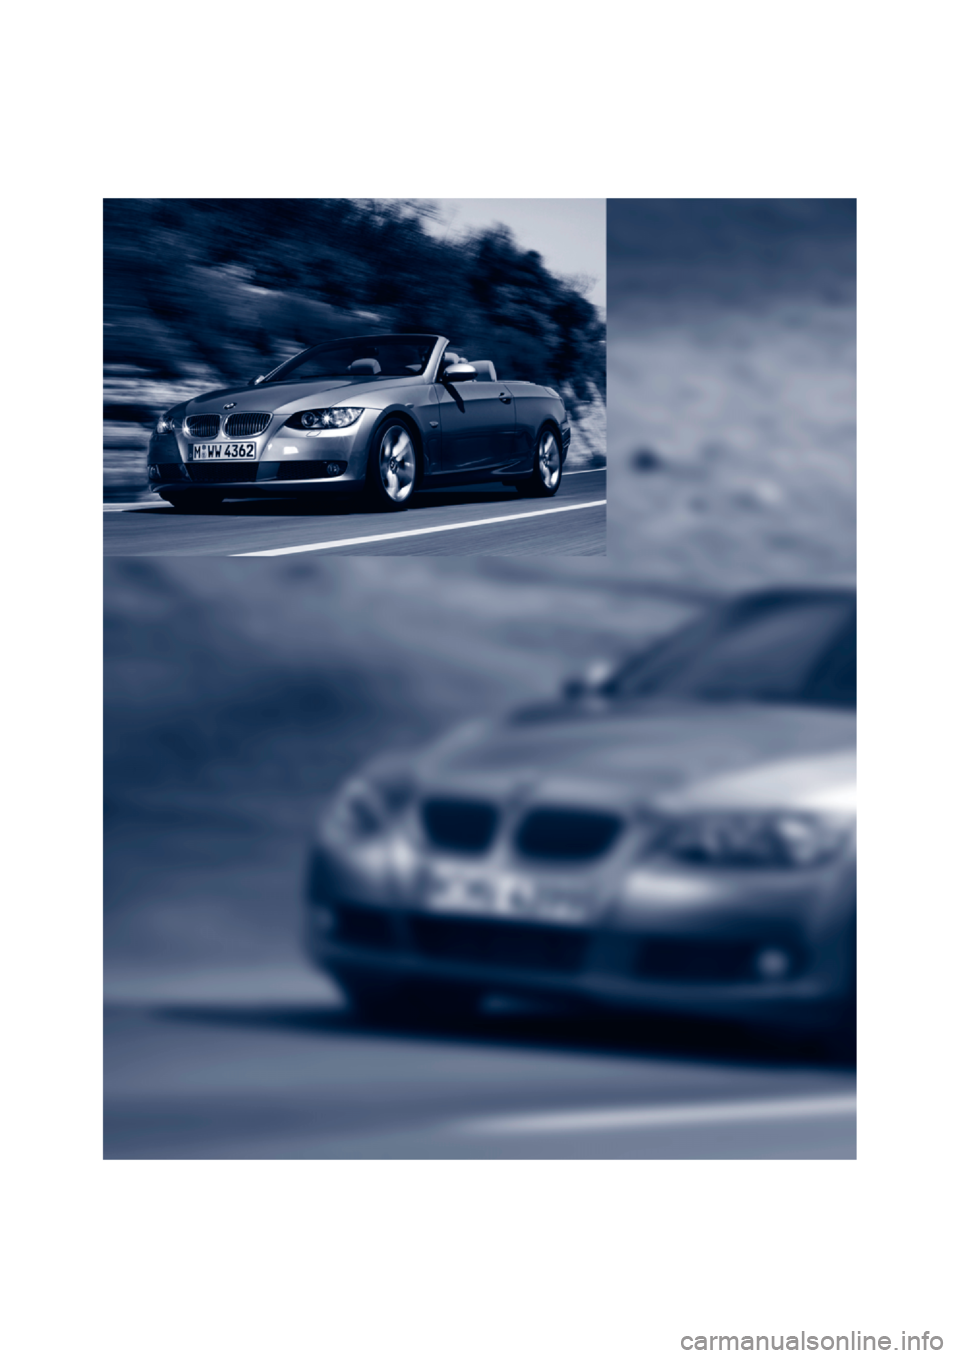 BMW 328I COUPE 2008 E92 Owners Manual, Page 10